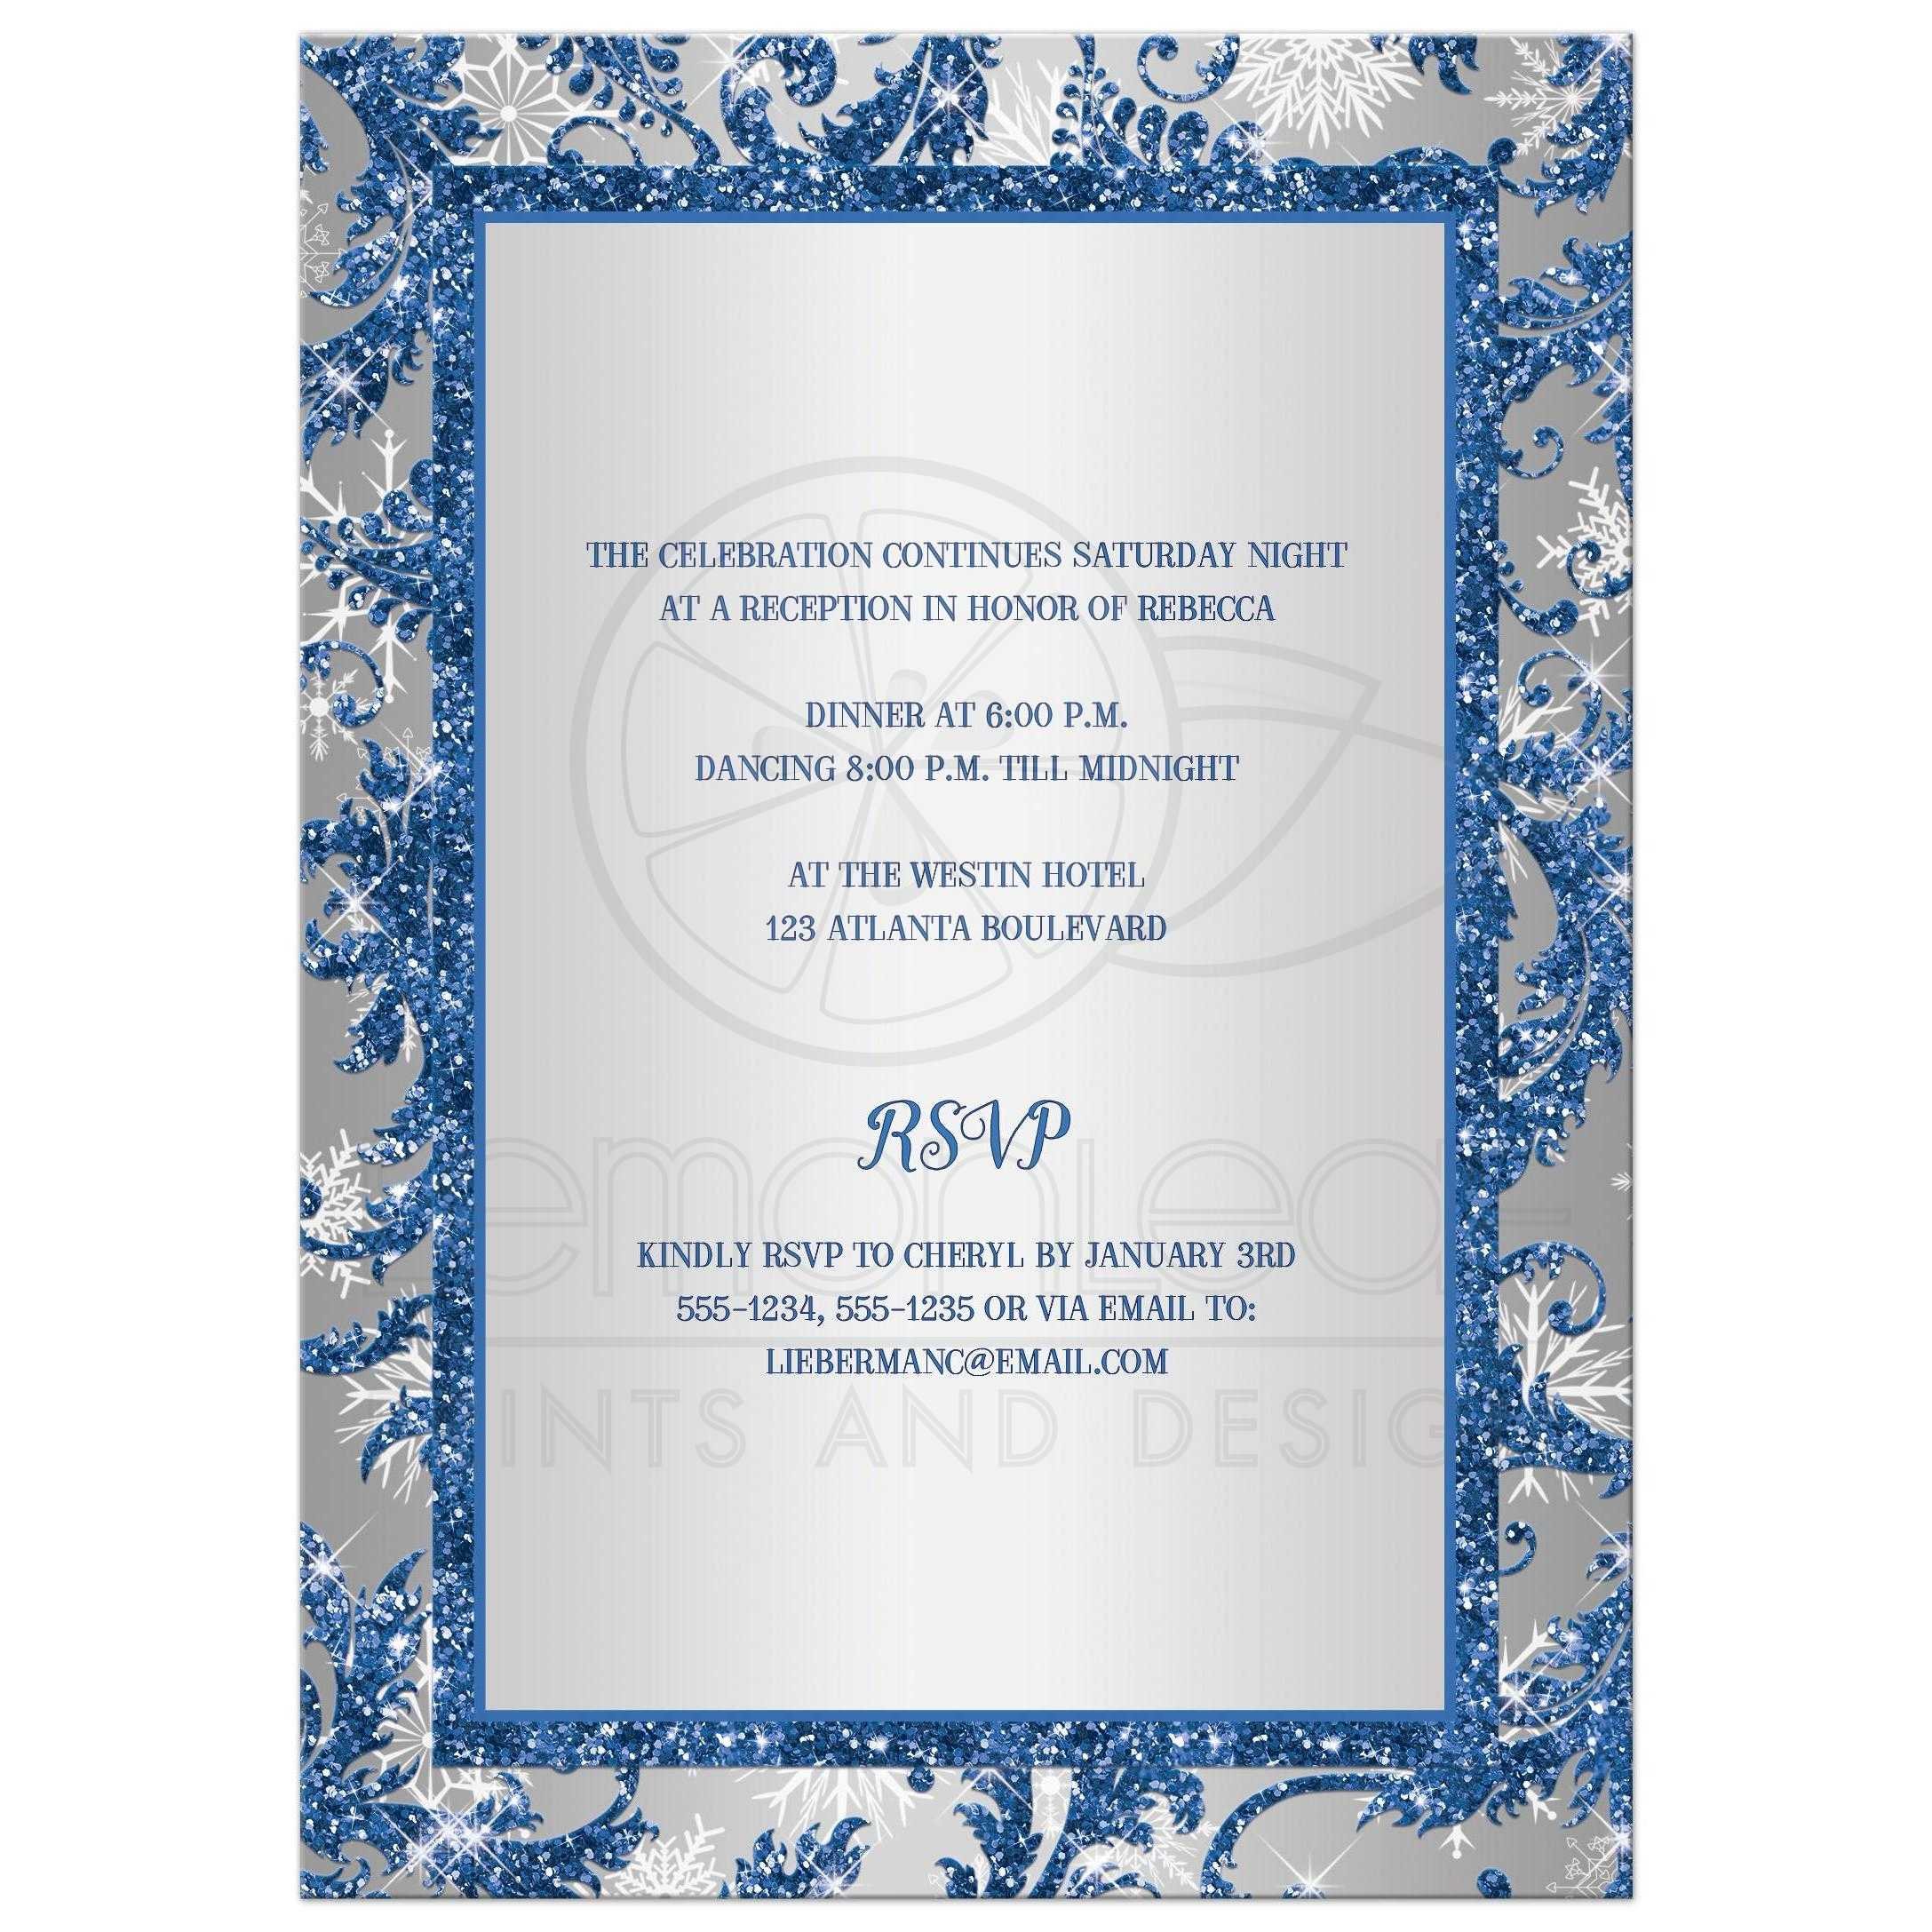 ... Royal Blue, Silver, White Snowflakes Bat Mitzvah Invitation With Jewish  Star ...